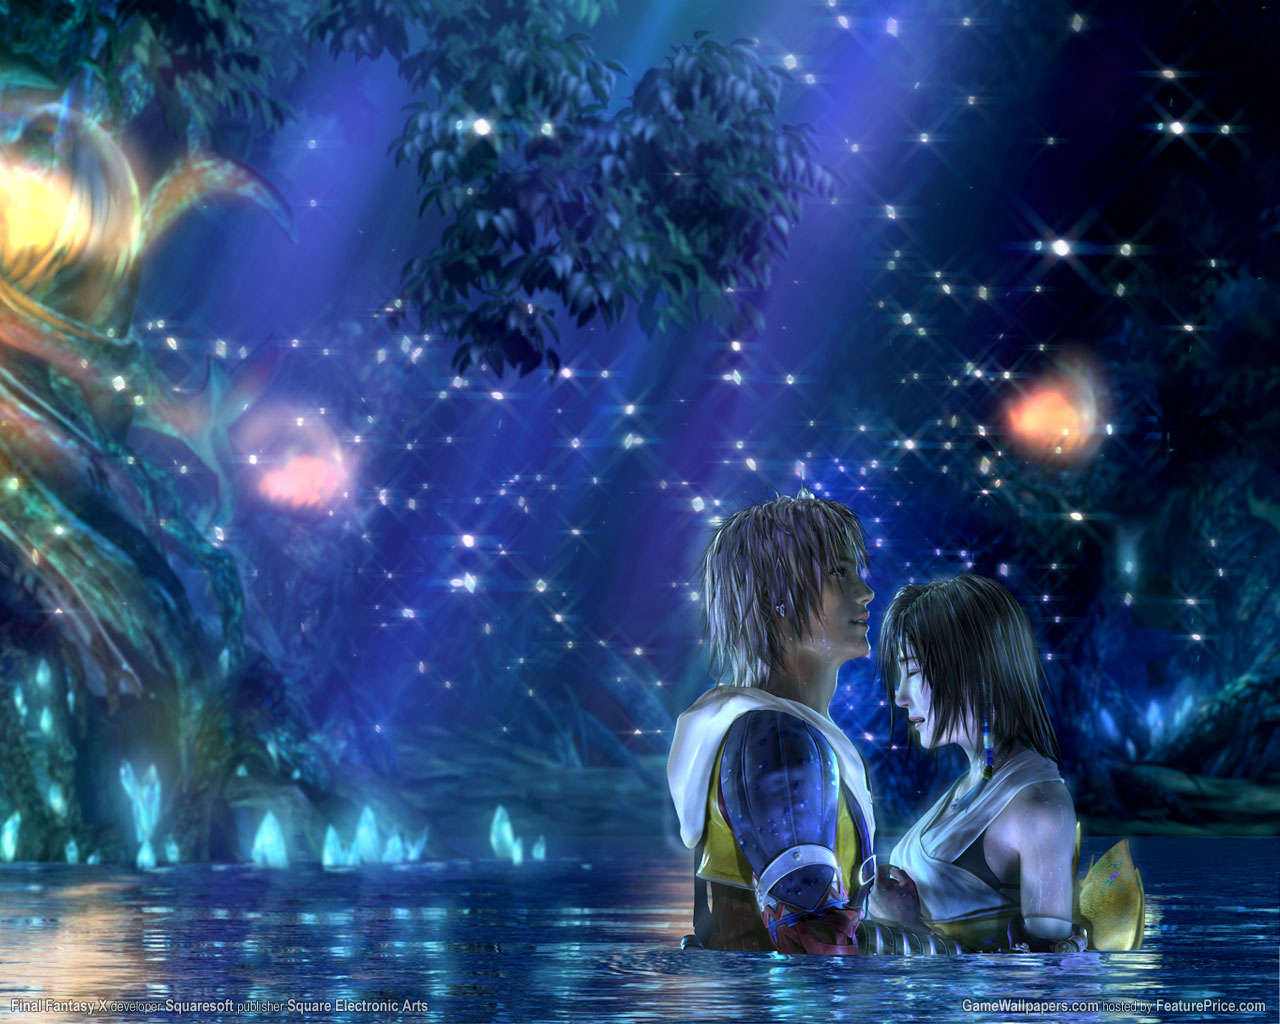 wallpaper final fantasy x 07 fantasy football,fantasy wallpaper,fantasy backgrounds,fantasy art,final fantasy,fantasy love,desktop wallpaper